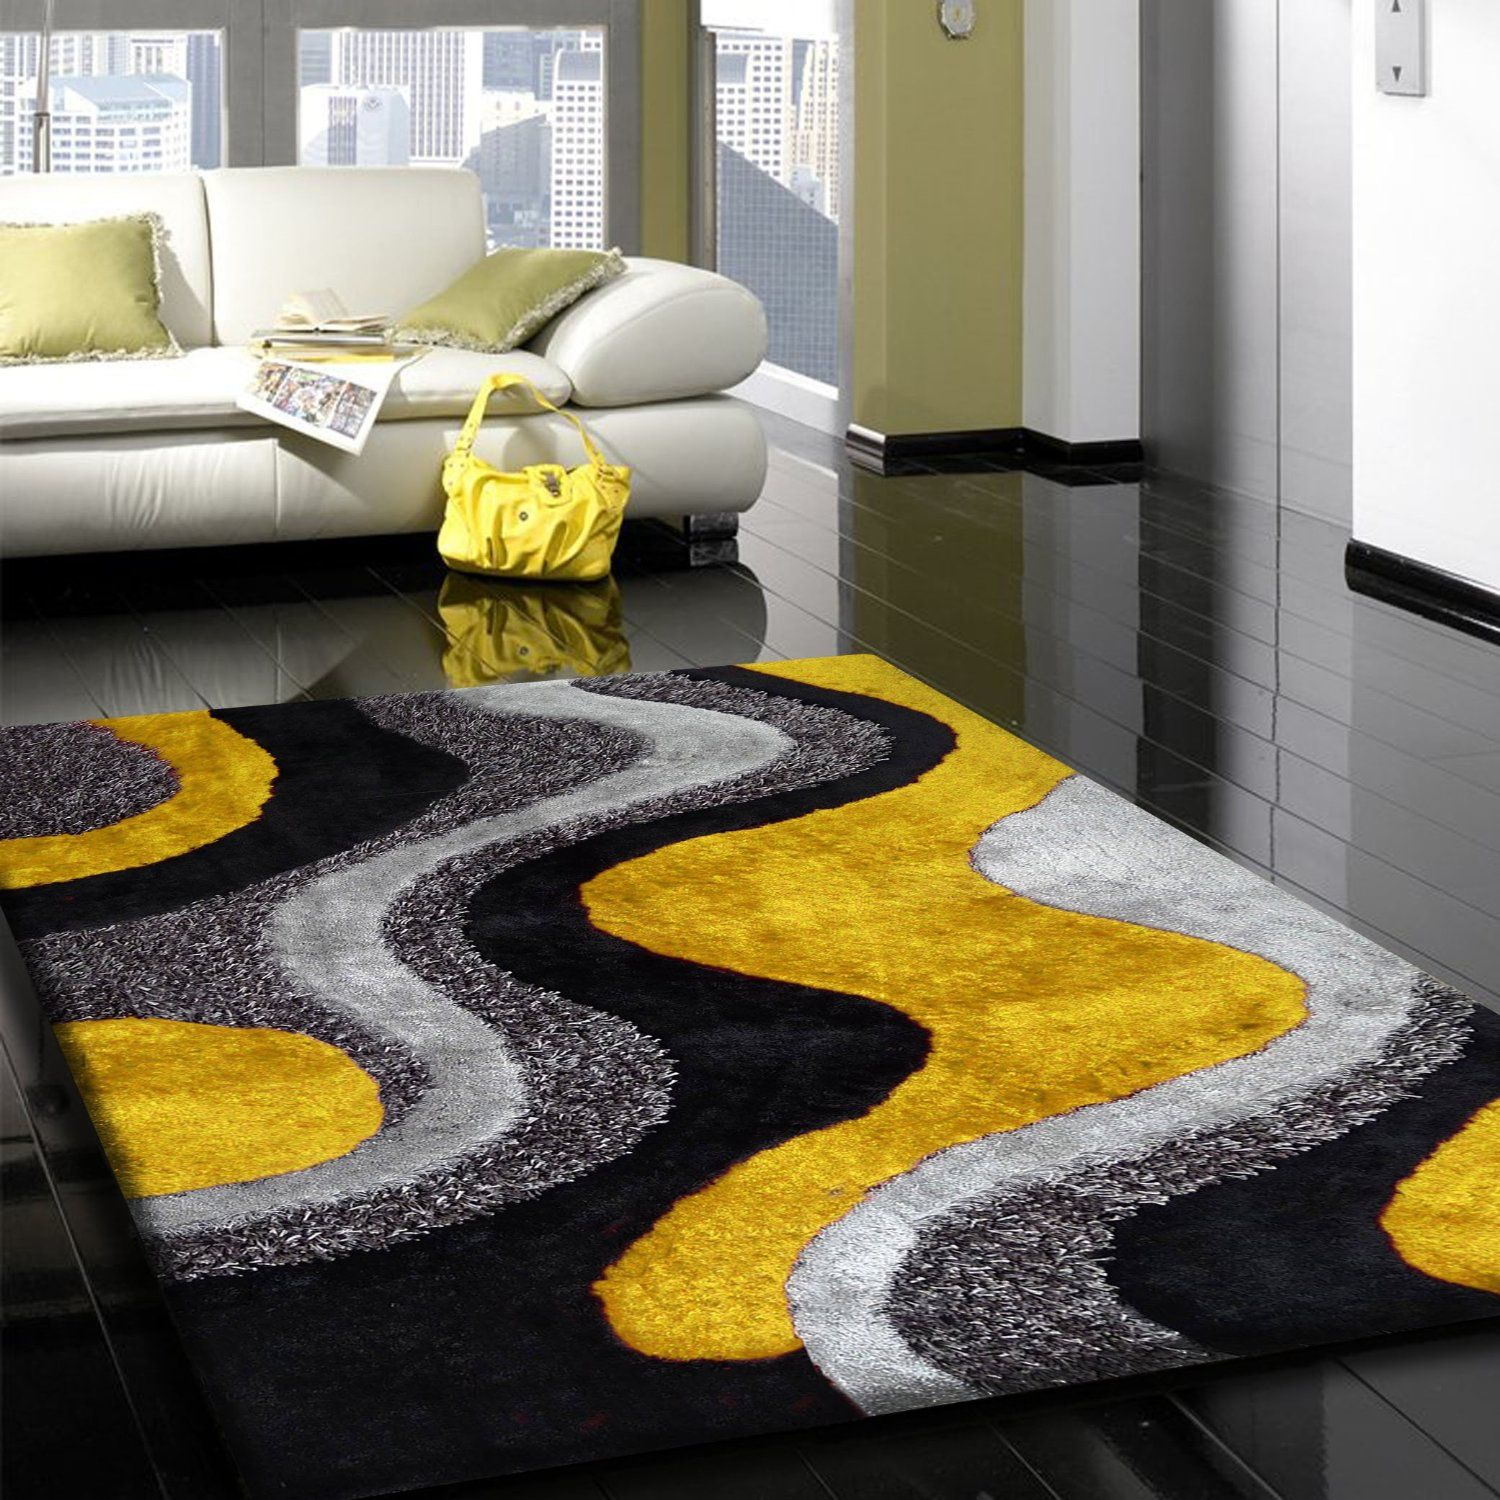 Wonderful Grey Shag Rug For Floor Decor Ideas Black